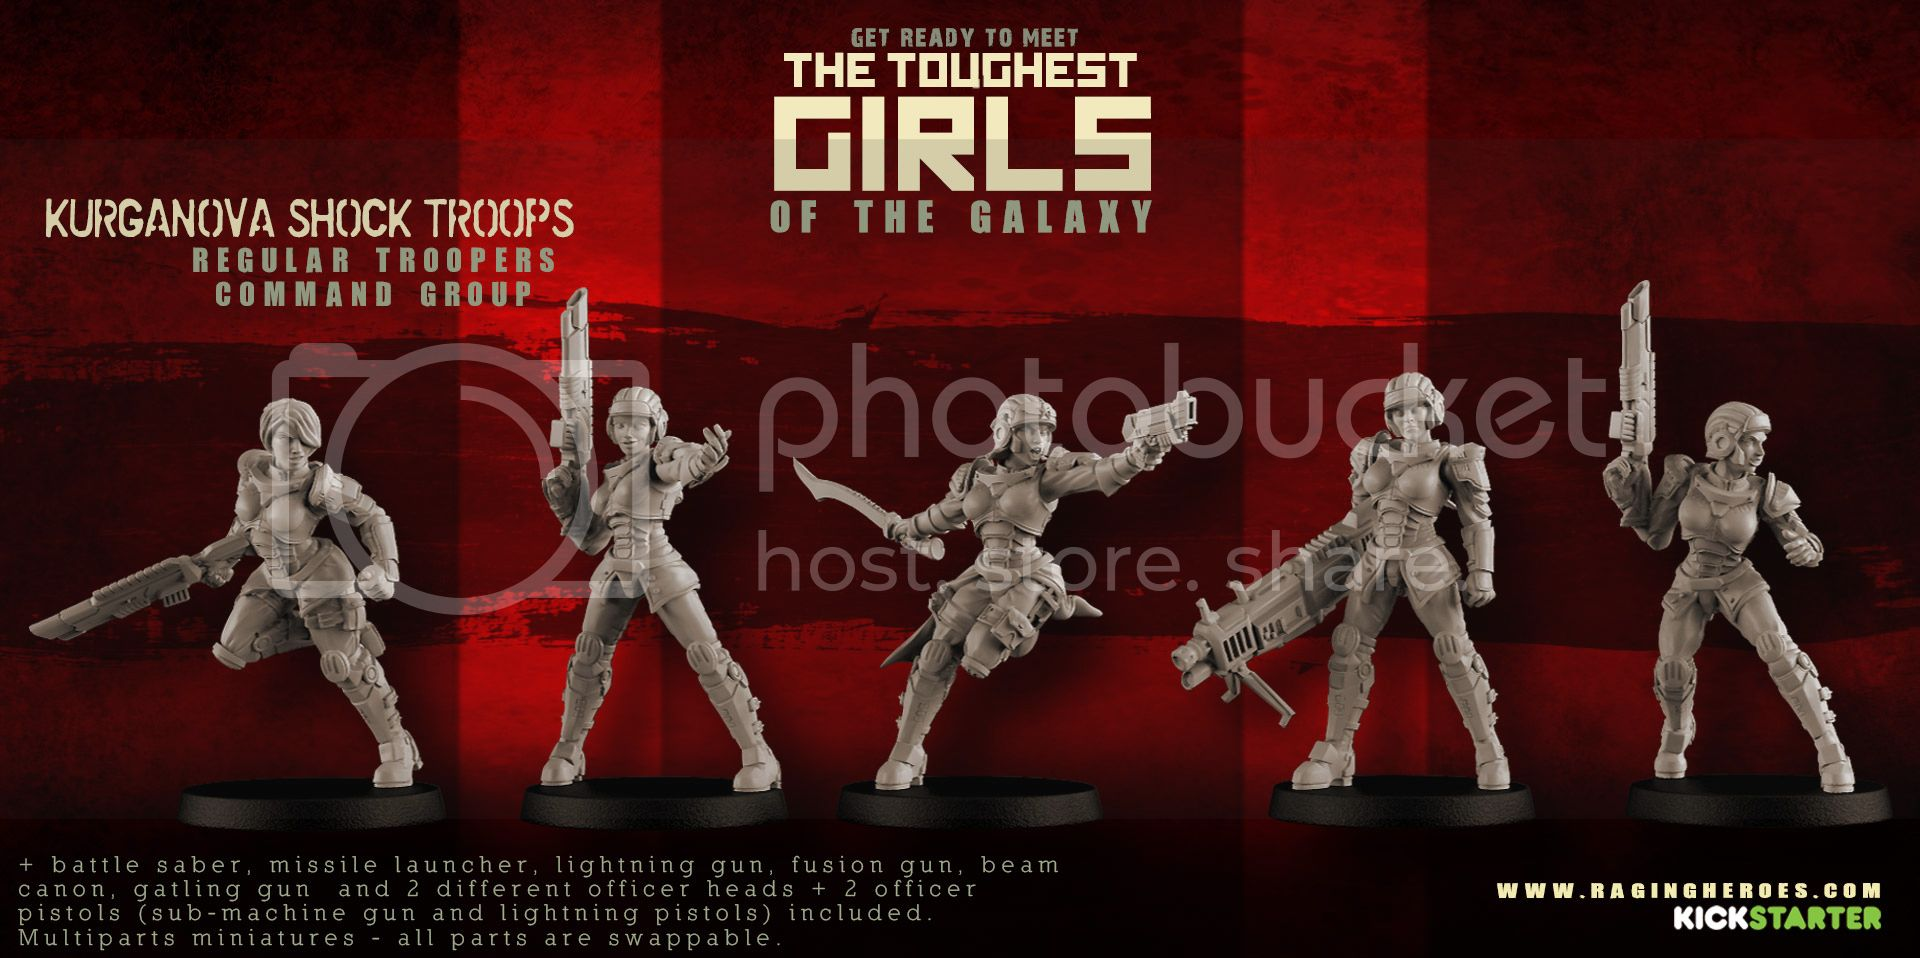 [Raging Heroes] The Toughest Girls of the Galaxy KST-R-CG_zps7736e34f